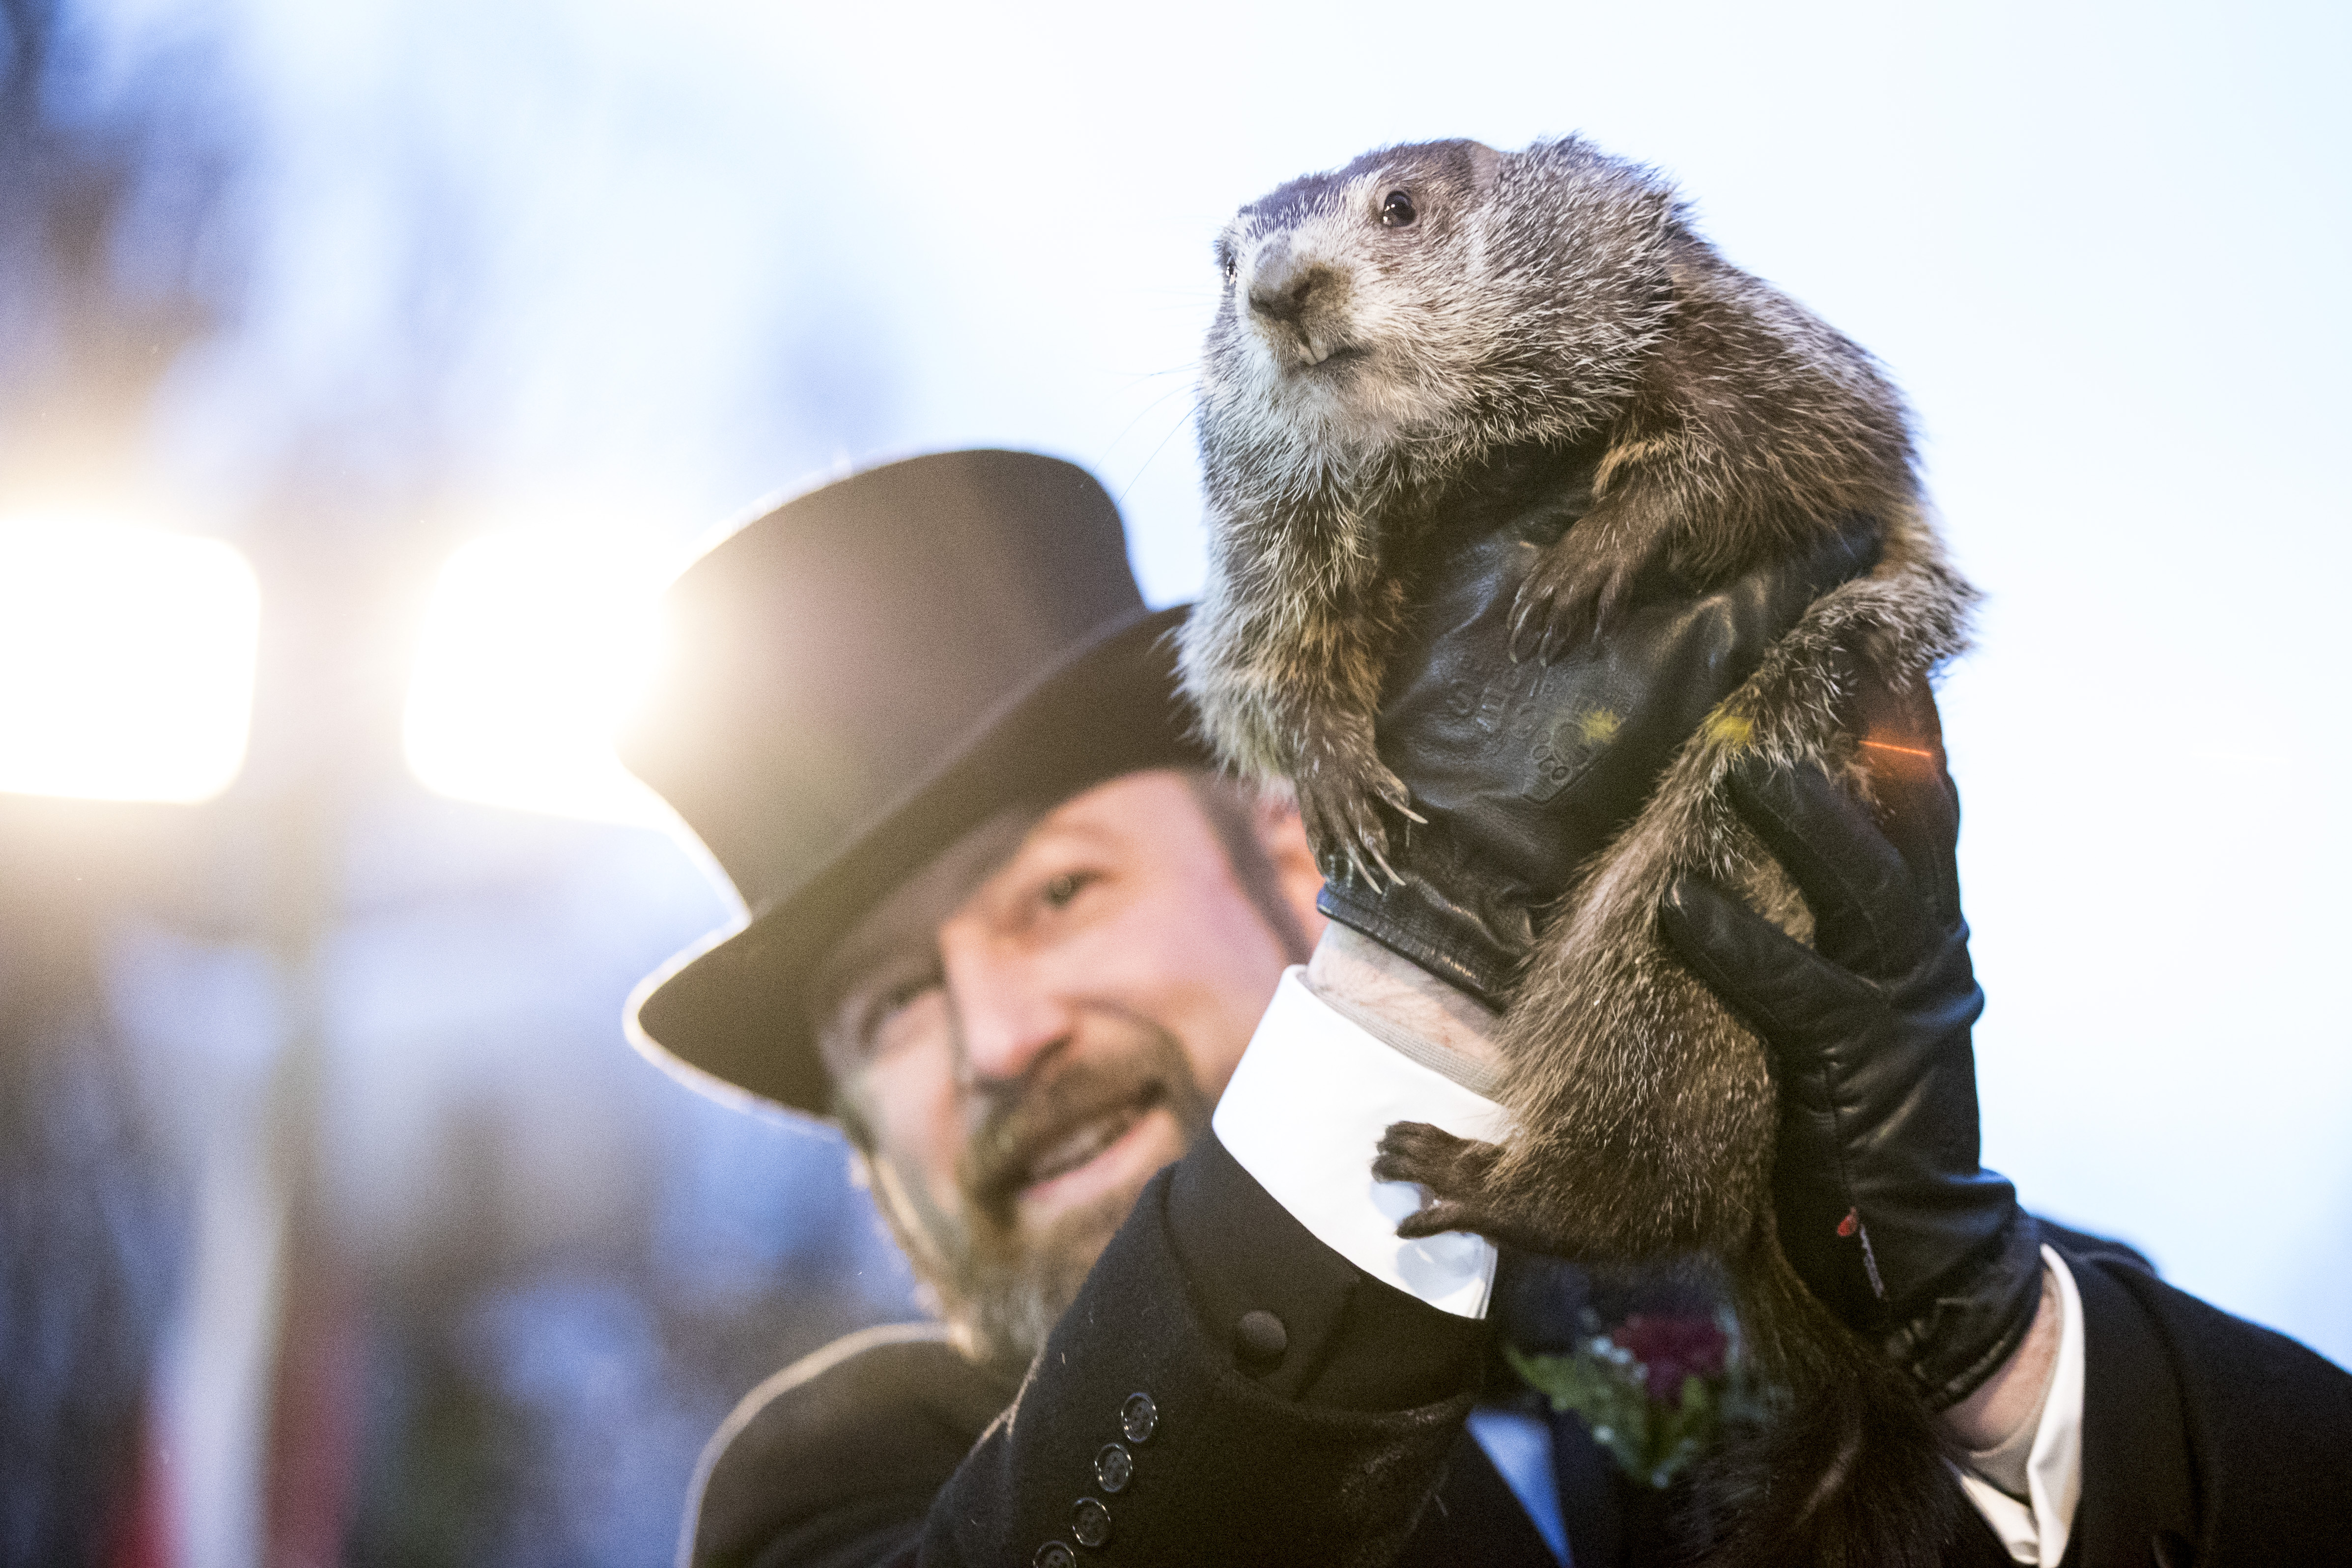 PETA is calling on Punxsutawney Phil to retire and be replaced with an AI groundhog